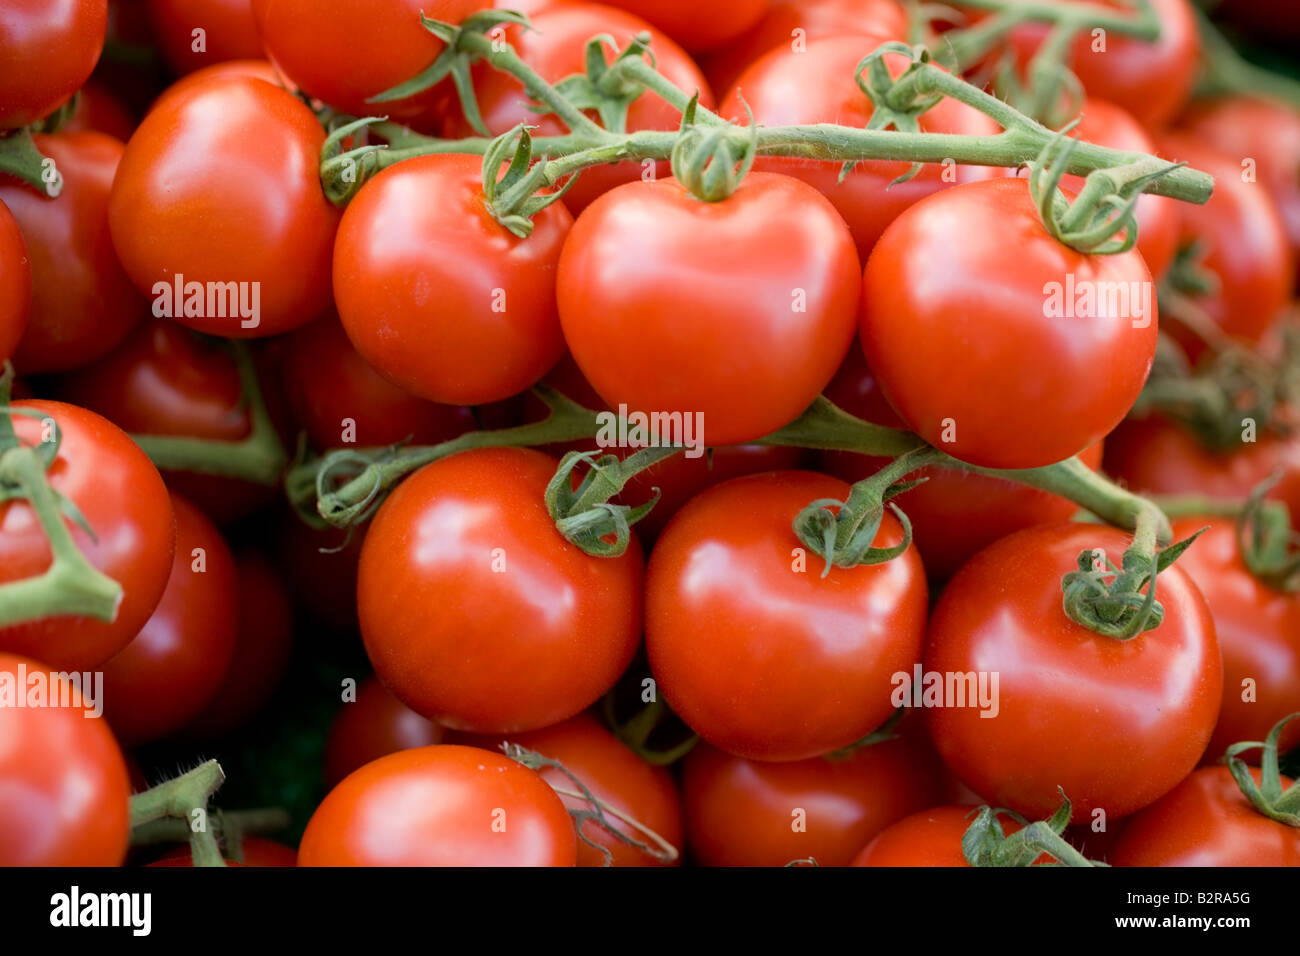 Tomato, Vegetable, Fruit, Vine, White, Backgrounds, Freshness, Food, Macro, Isolated, Dew, Organic, Wet, Red, Healthy - Stock Image